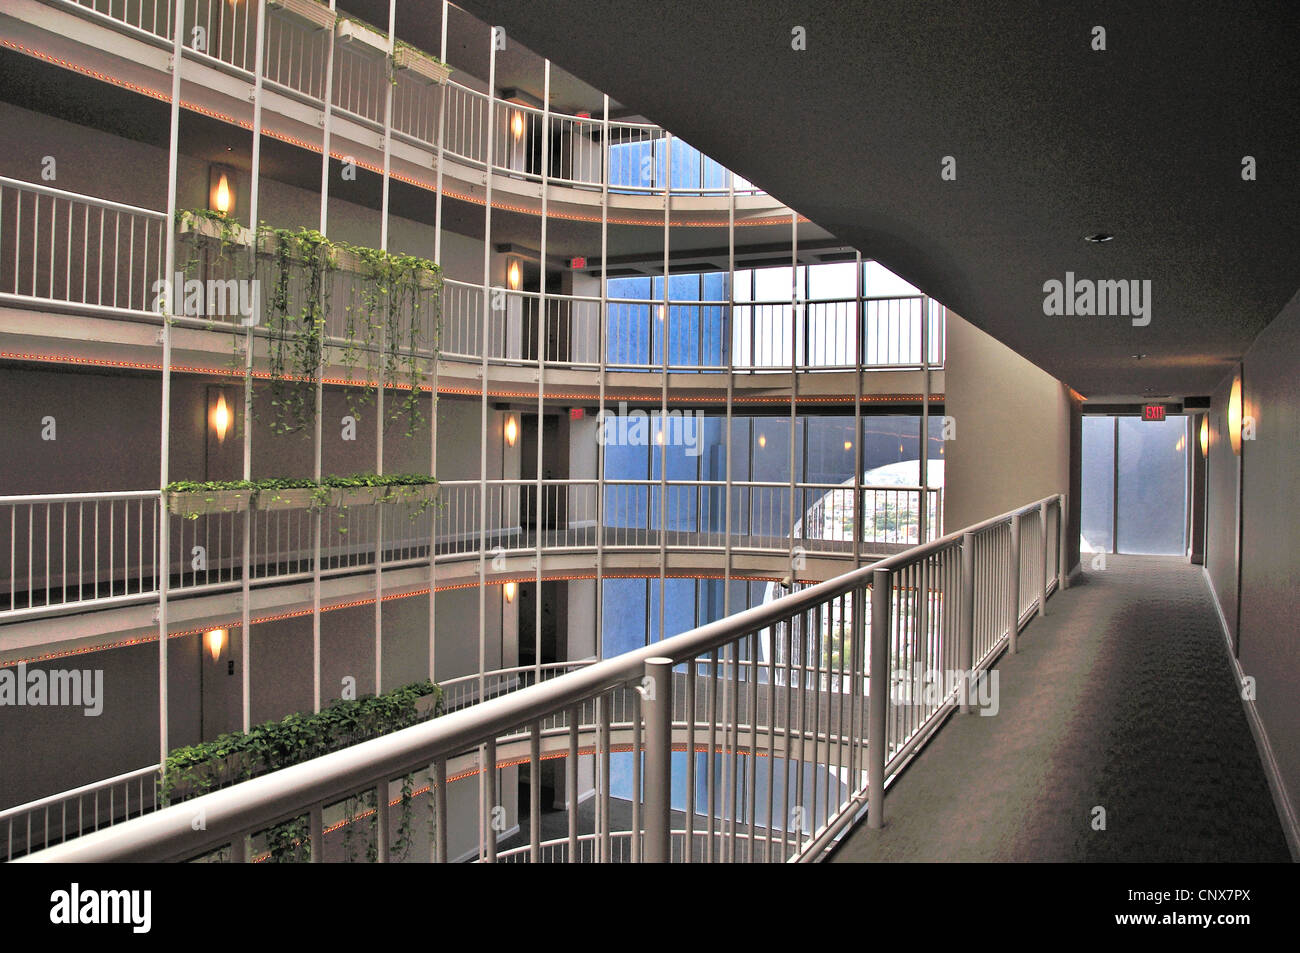 Florida, Miami, The Grand Condominium, The Atrium - Stock Image